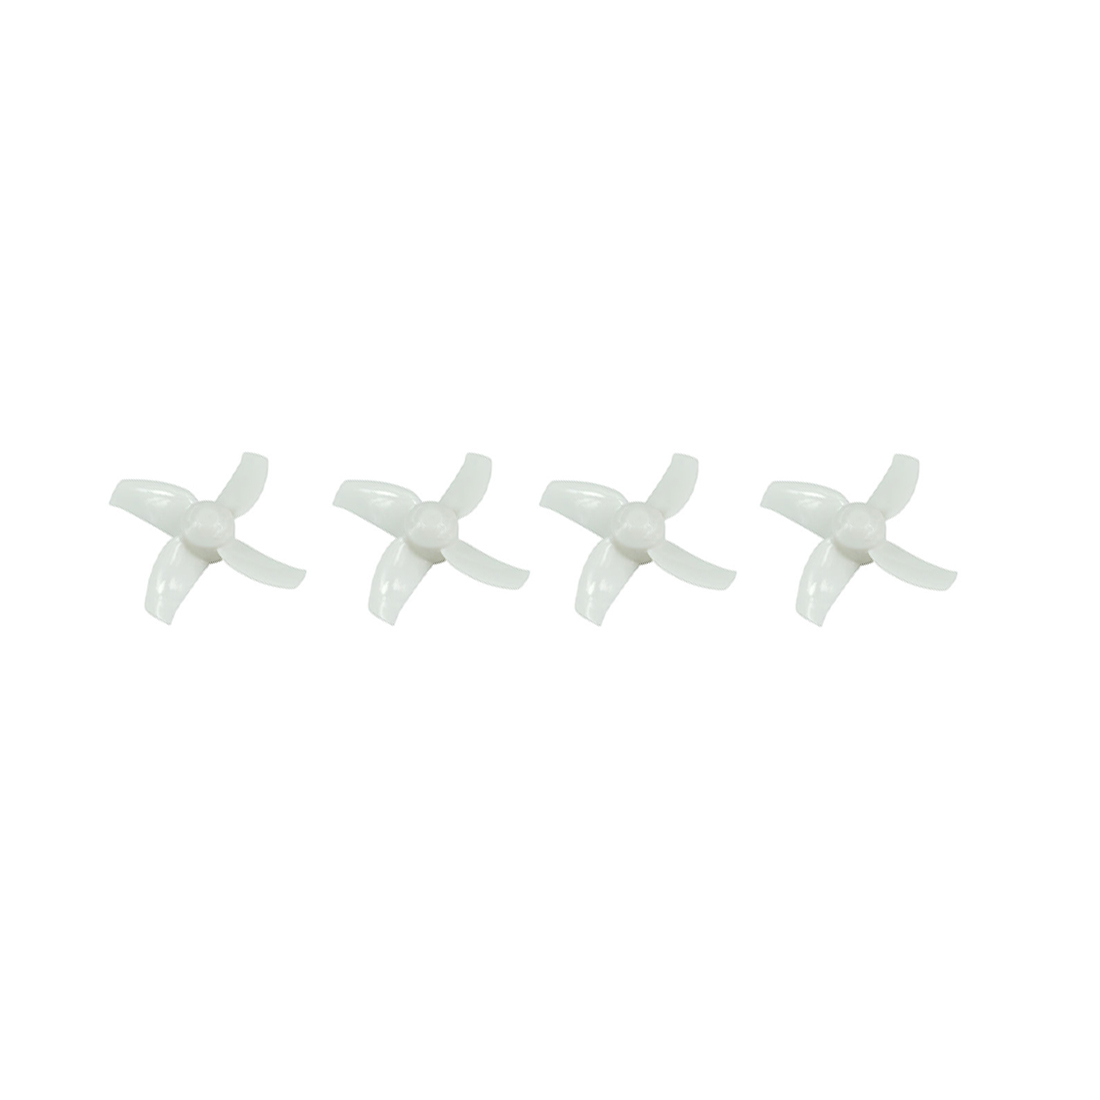 Us 476 Jmt 65mm Bwhoop65 Brushless Whoop Frame Kit With 10pairs Happymodel Tinywhoop Fpv Motor 0603 Cw Ccw 31mm 3 Blade Propeller For Indoor Racing Drone Quadcopter